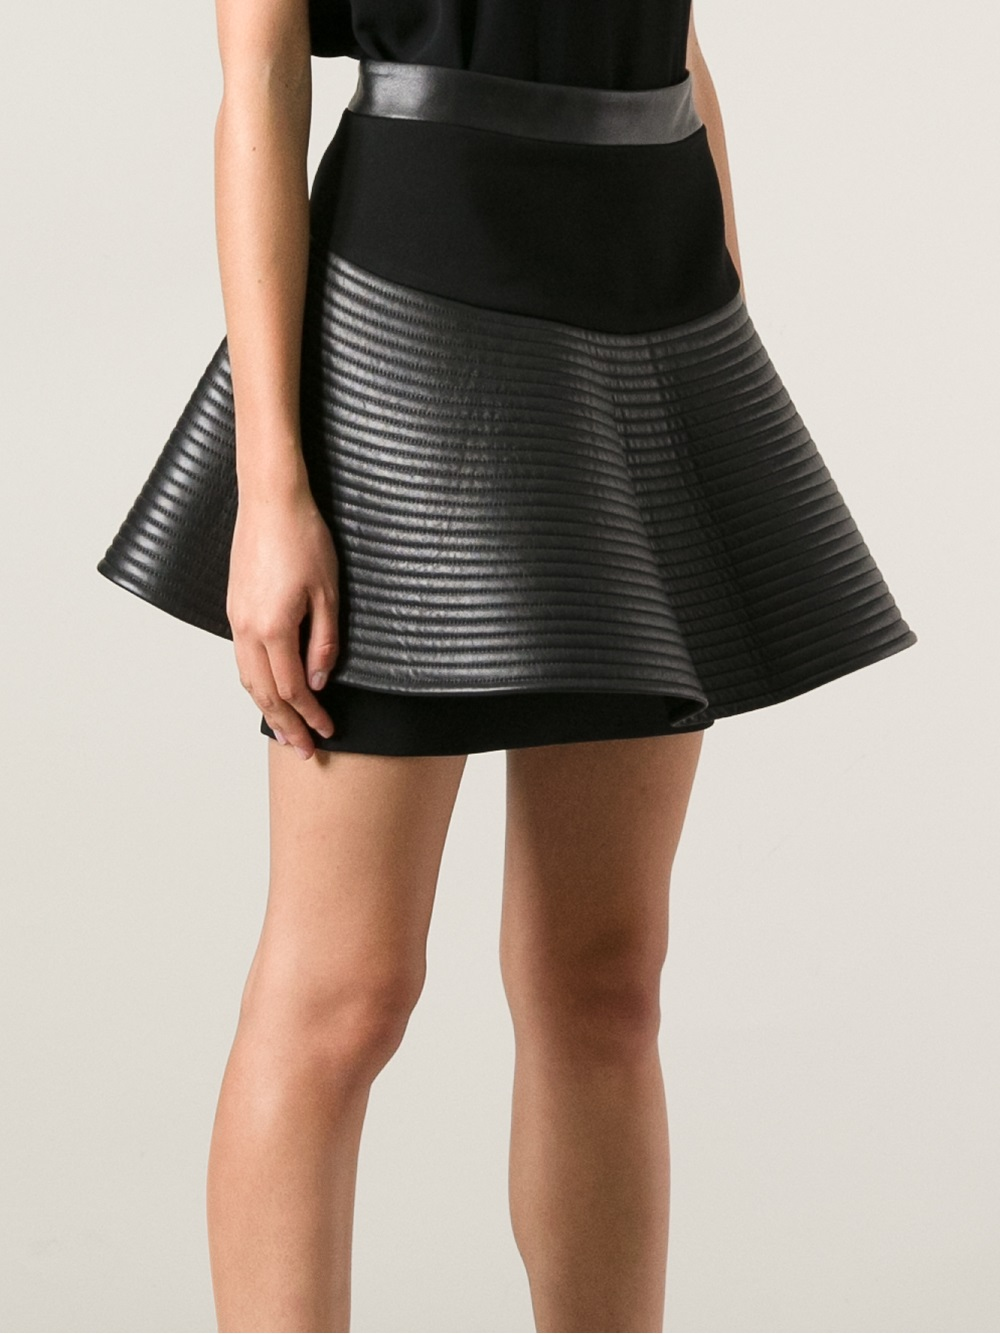 David koma Flared Leather Skirt in Black | Lyst